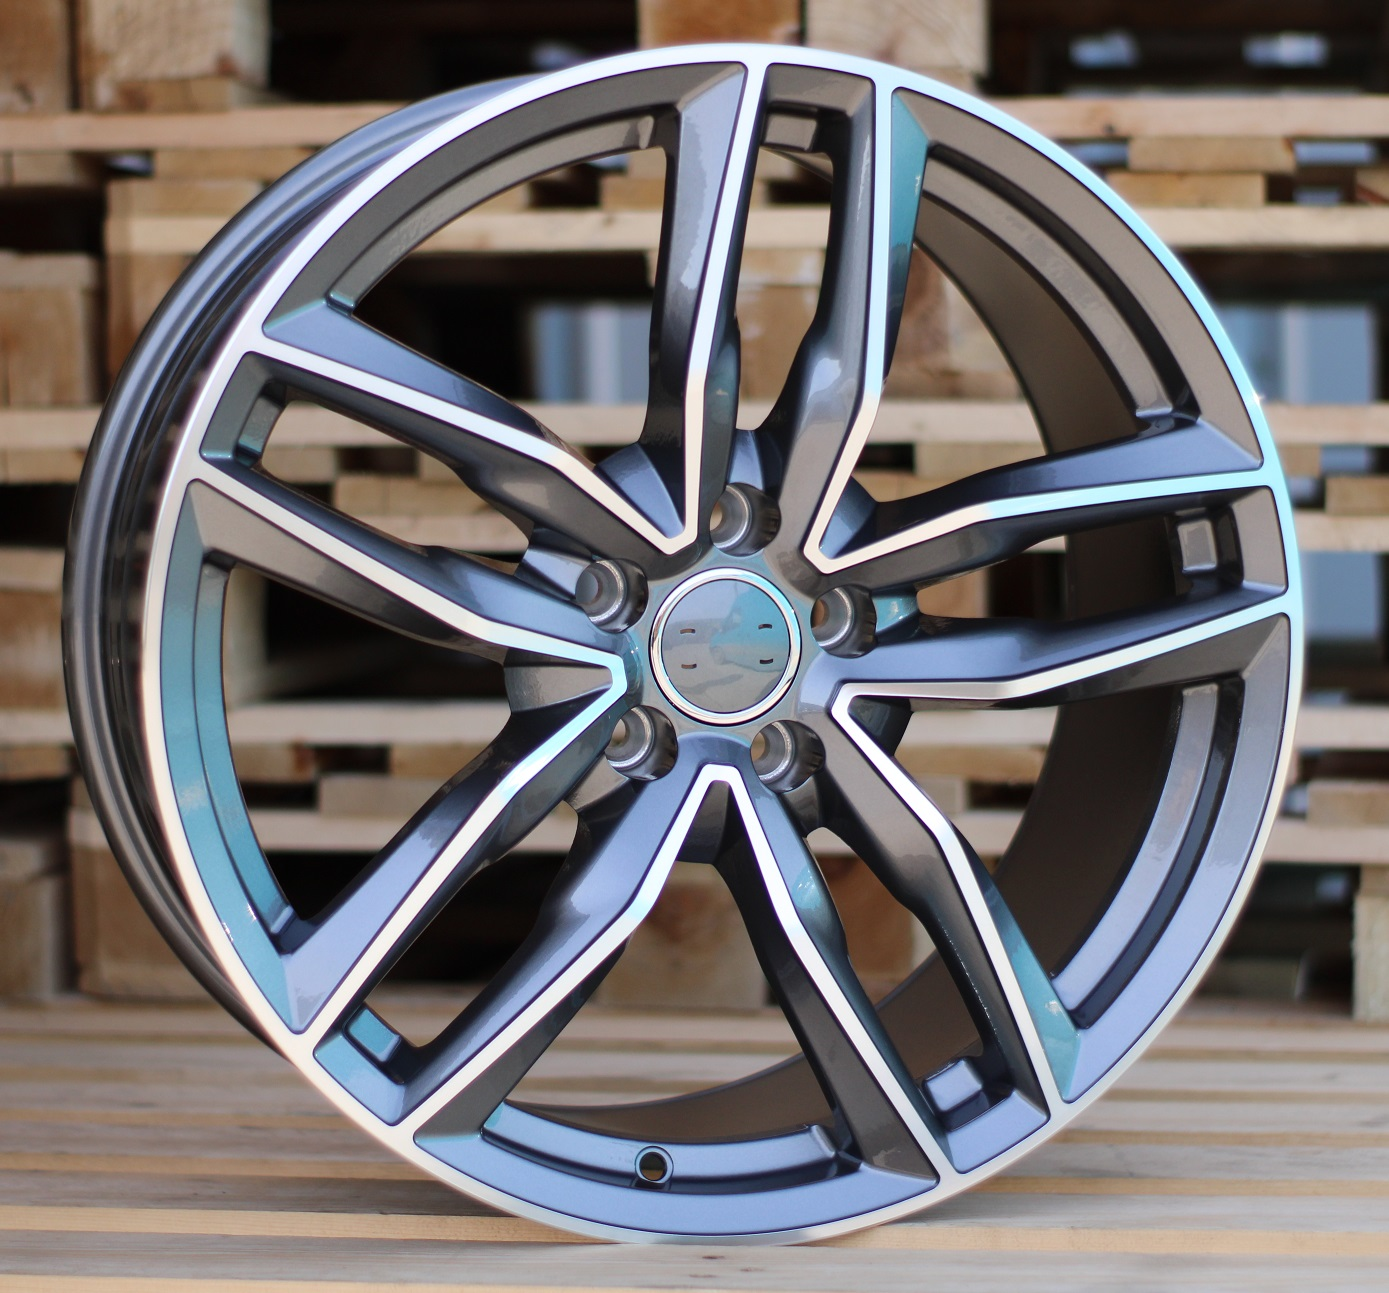 A19X8.5 5x112 ET35 66.45 BK690 (BY1126) MG+Powder Coating RWR AUD (+3eur) (K5+K4)## 8.5x19 ET35 5x112